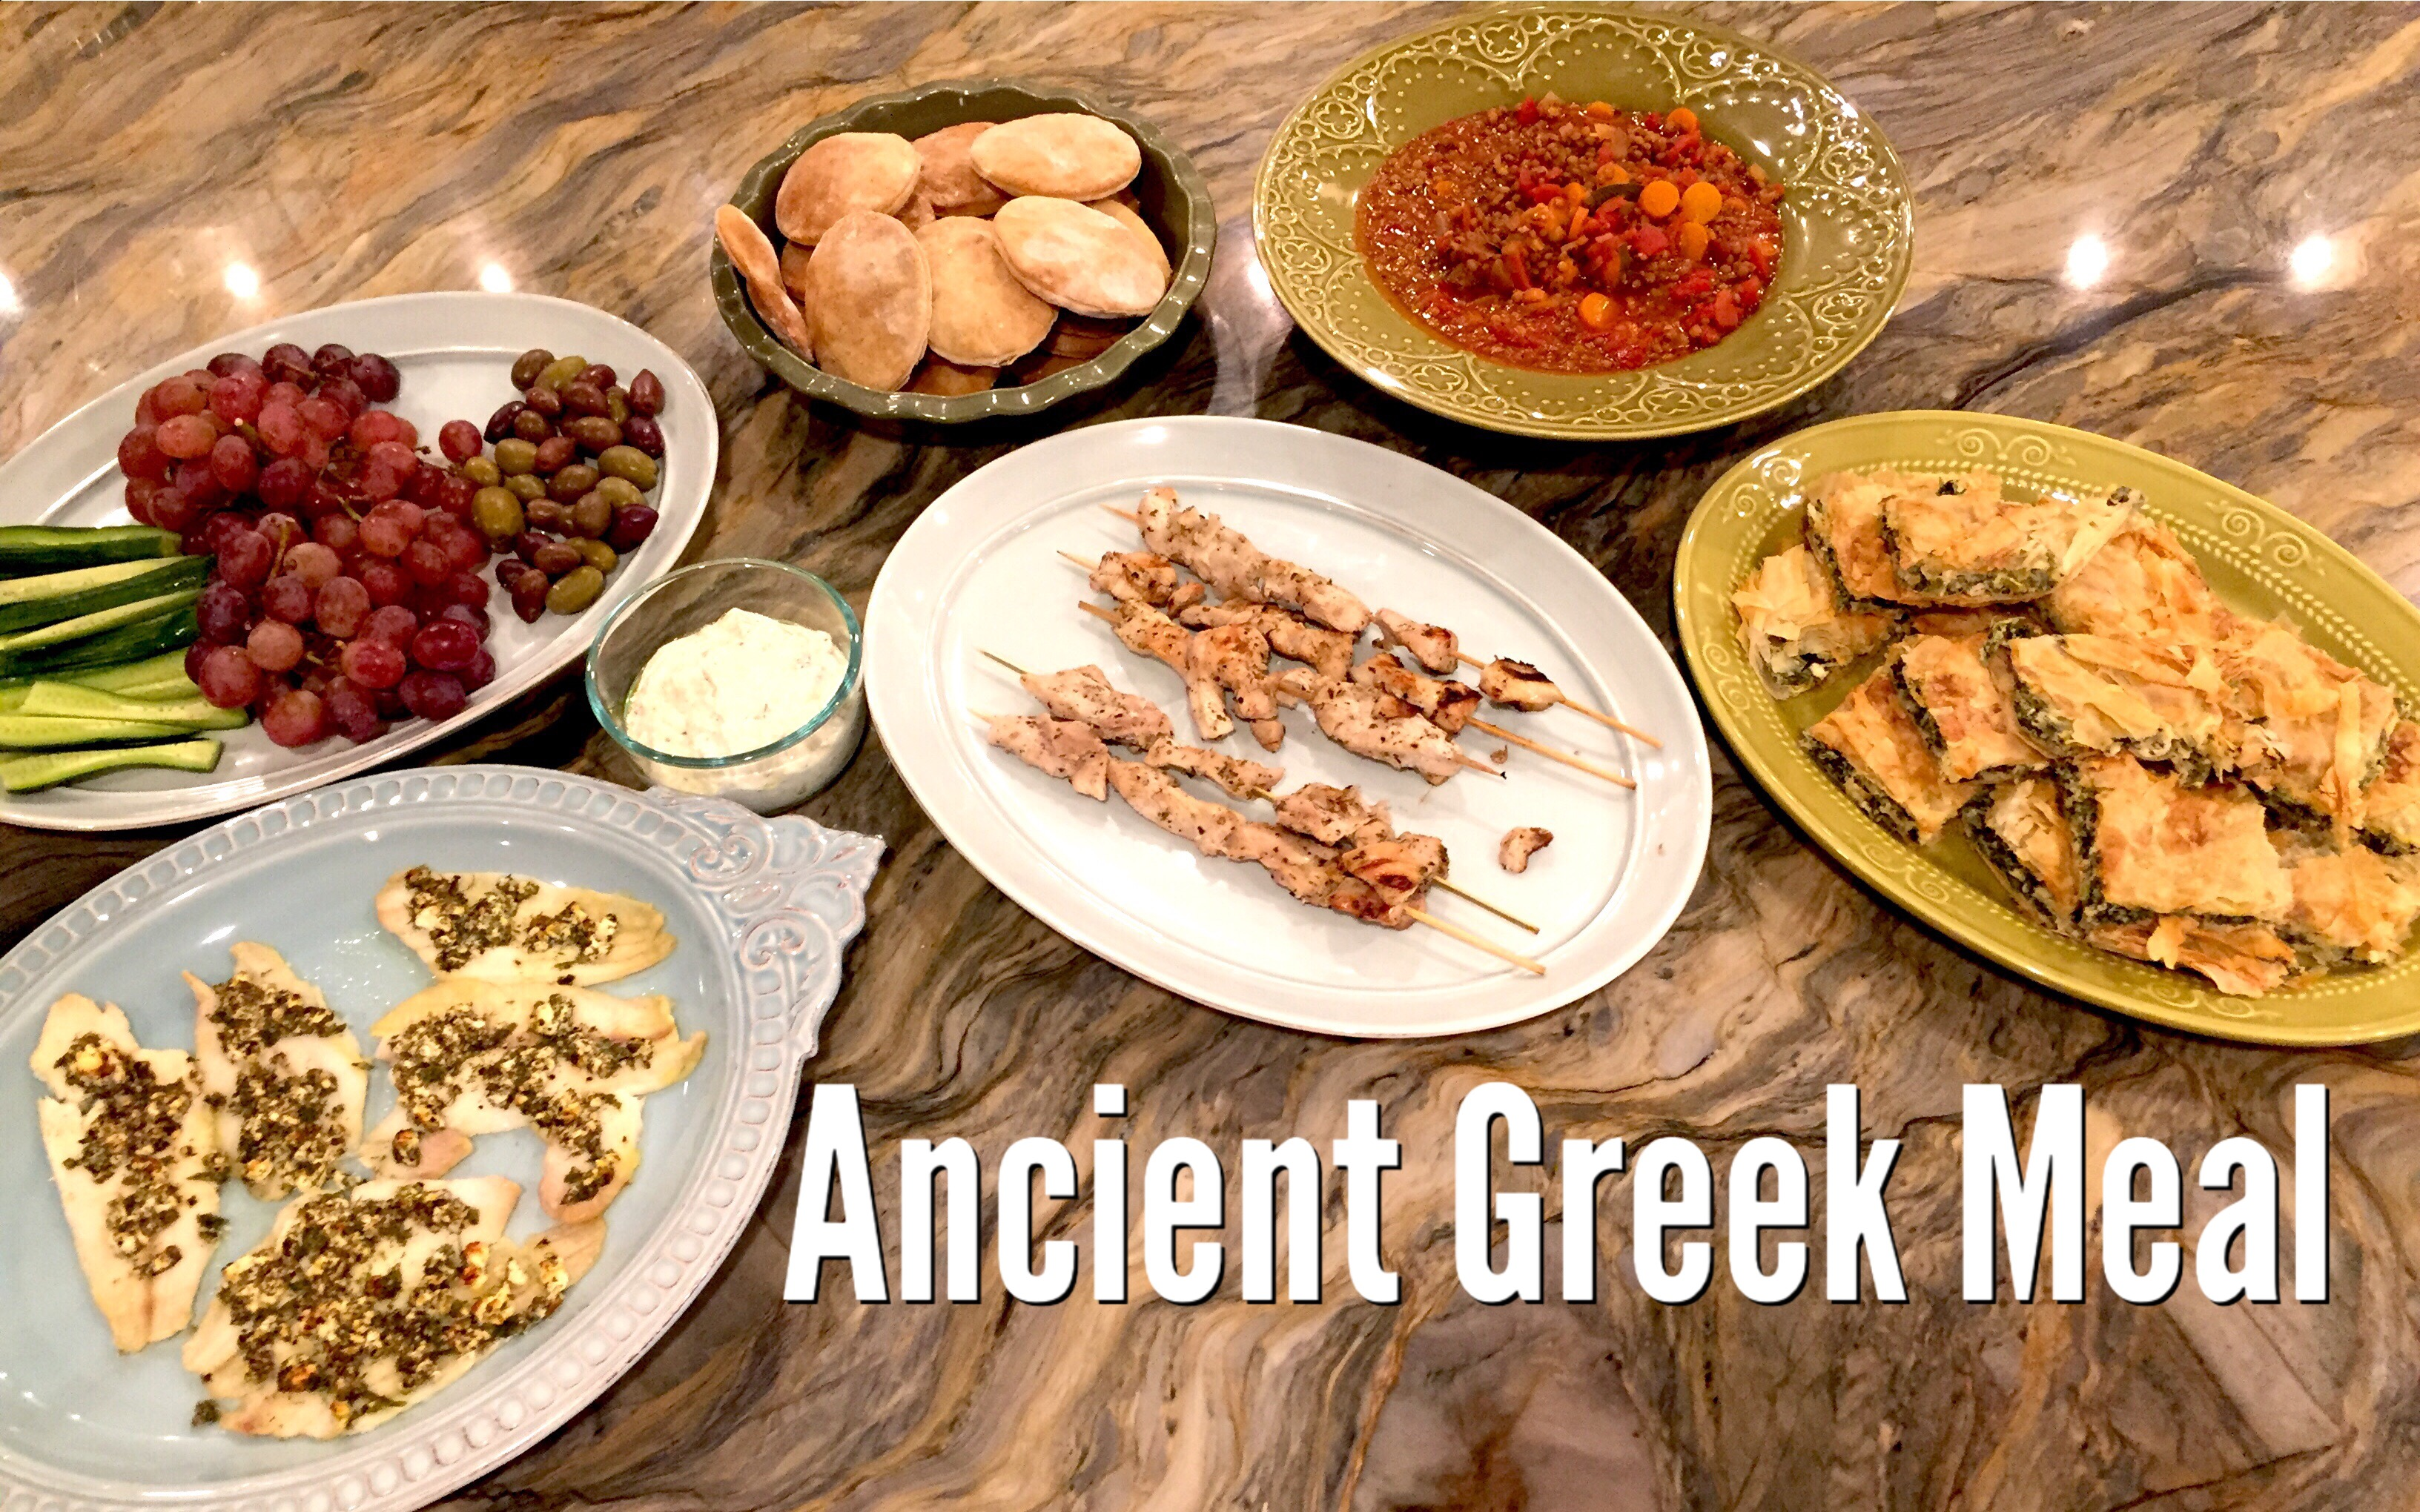 ANCIENT GREEK MEAL